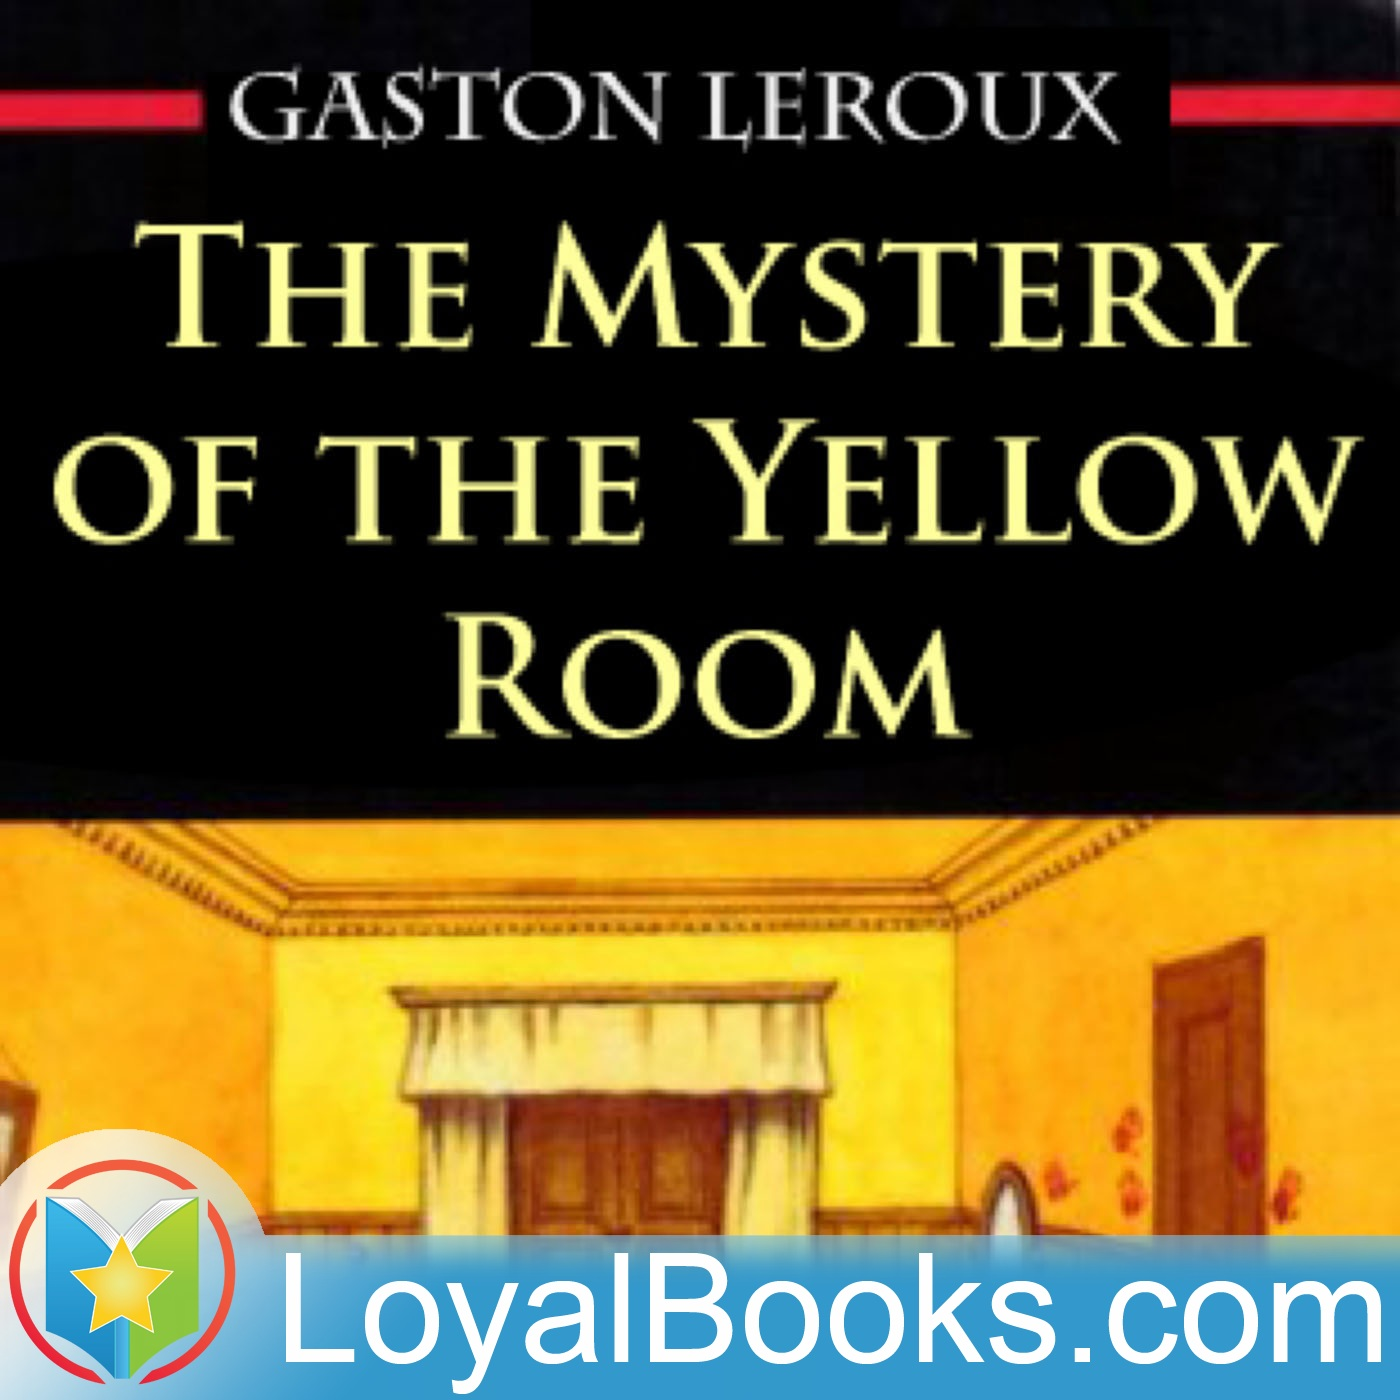 <![CDATA[The Mystery of the Yellow Room by Gaston Leroux]]>